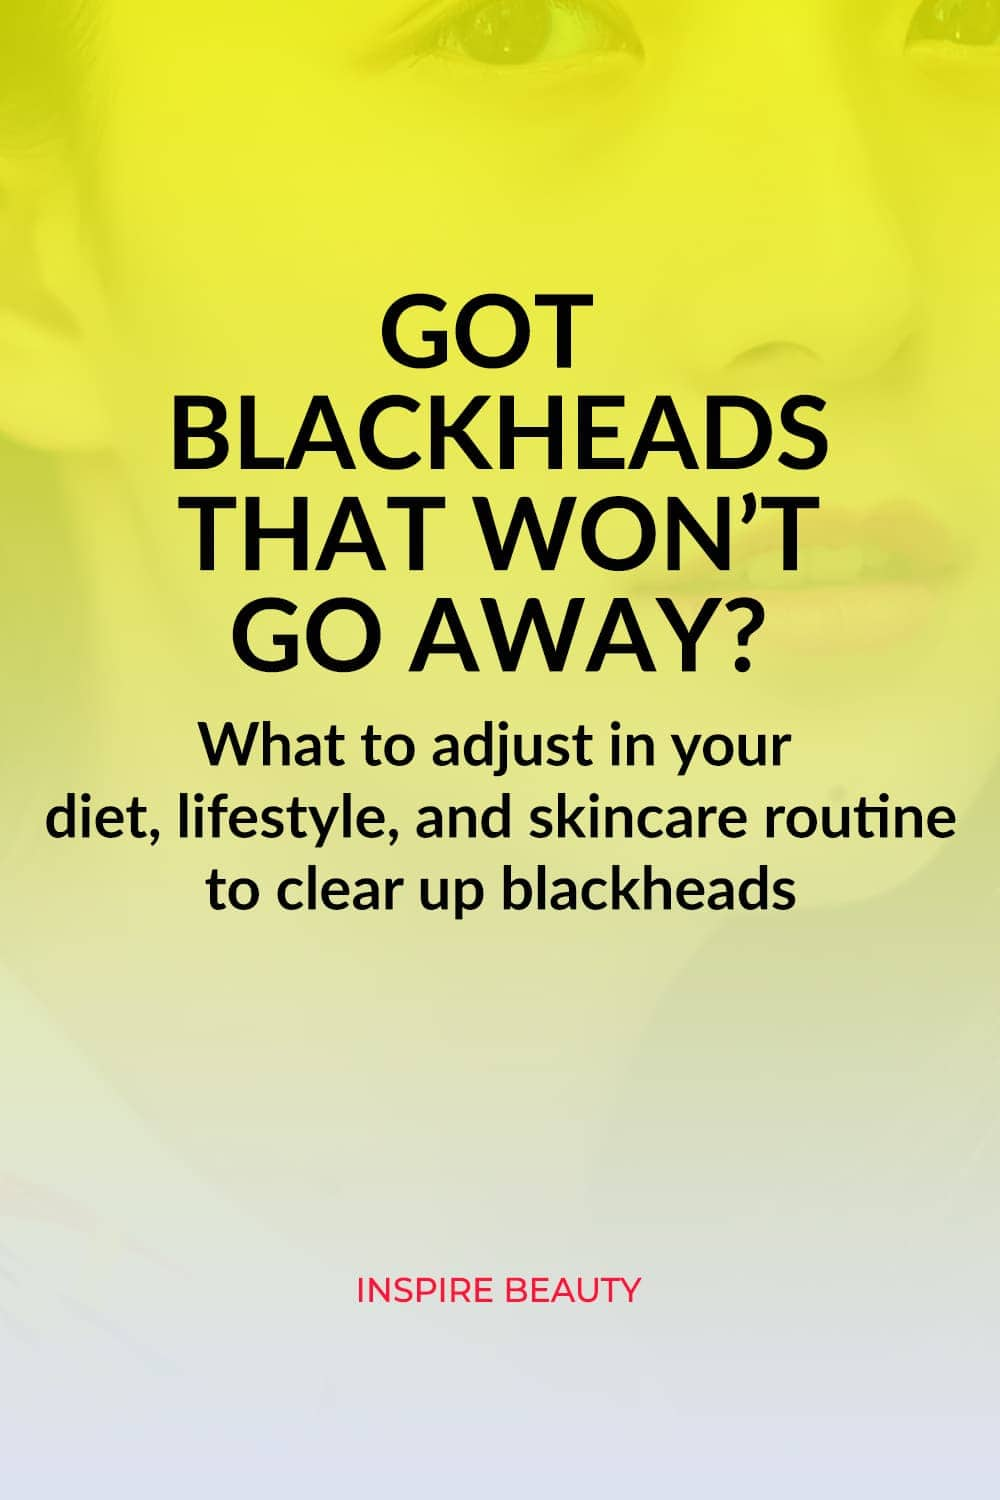 How to clear up blackheads with diet, lifestyle and recommended skincare products